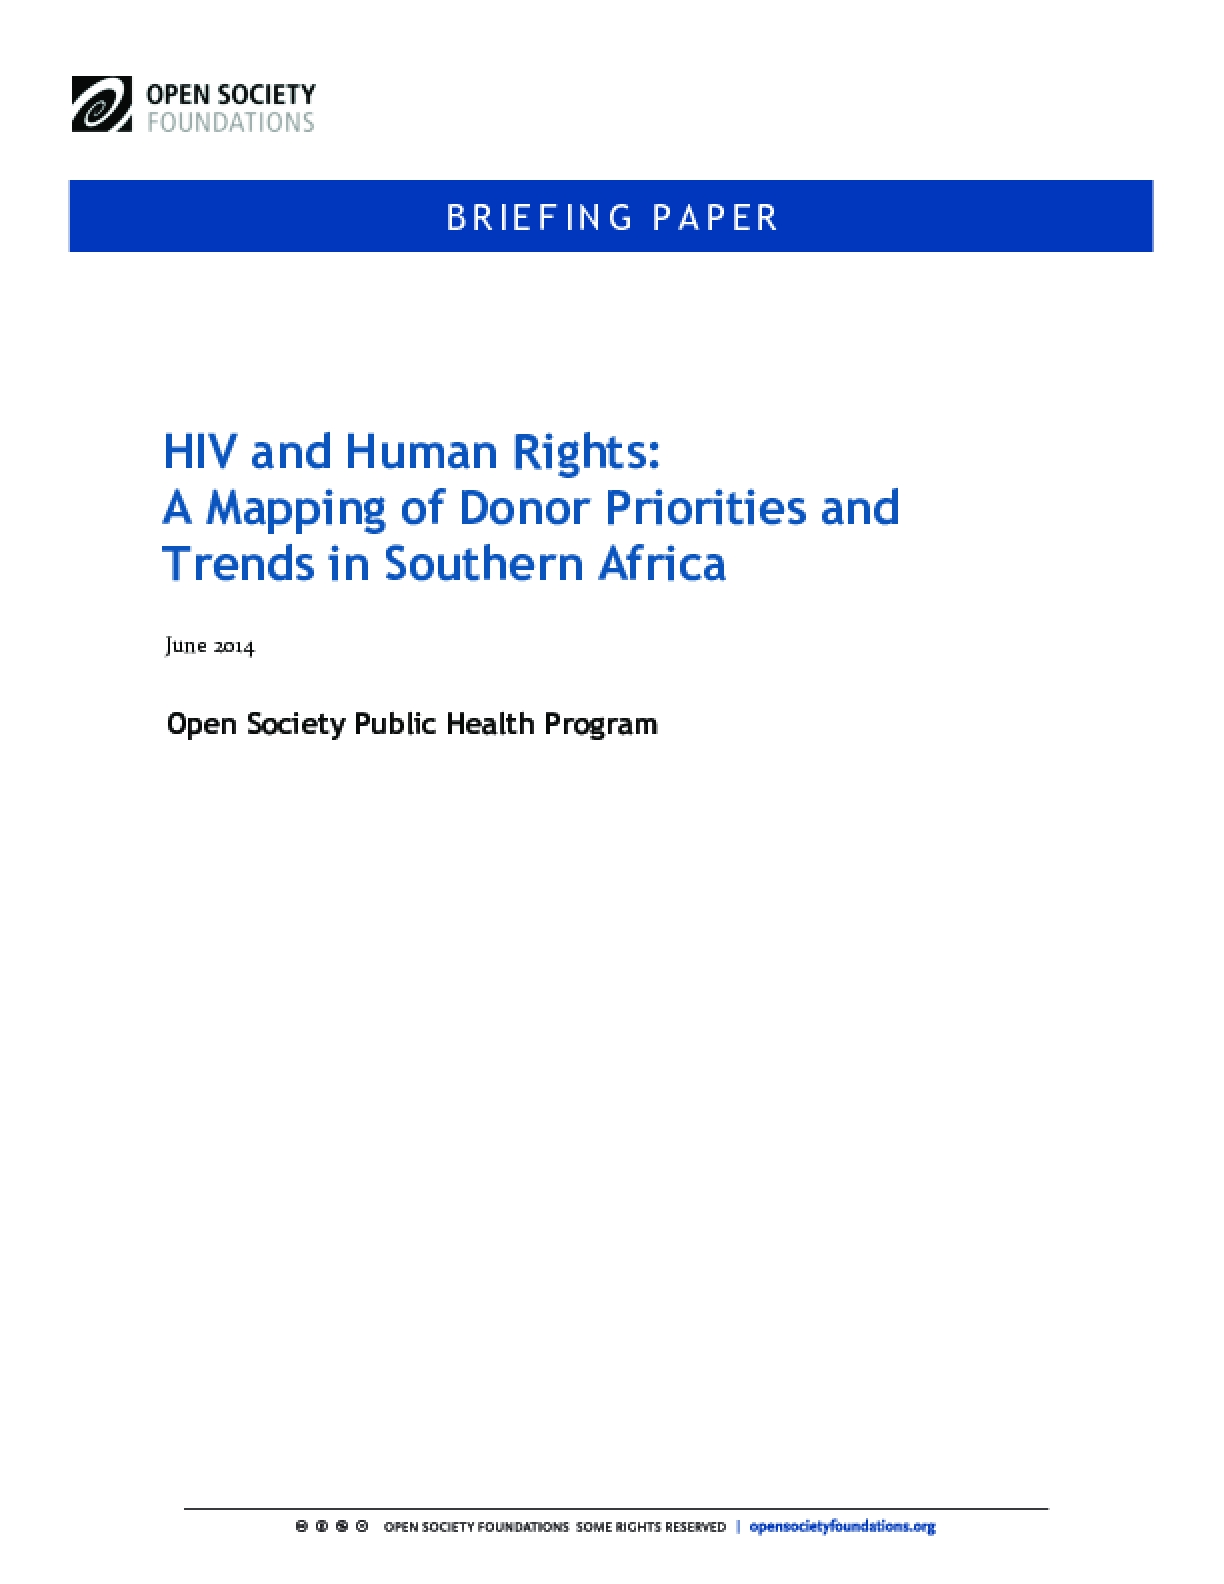 HIV and Human Rights: A Mapping of Donor Priorities and Trends in Southern Africa